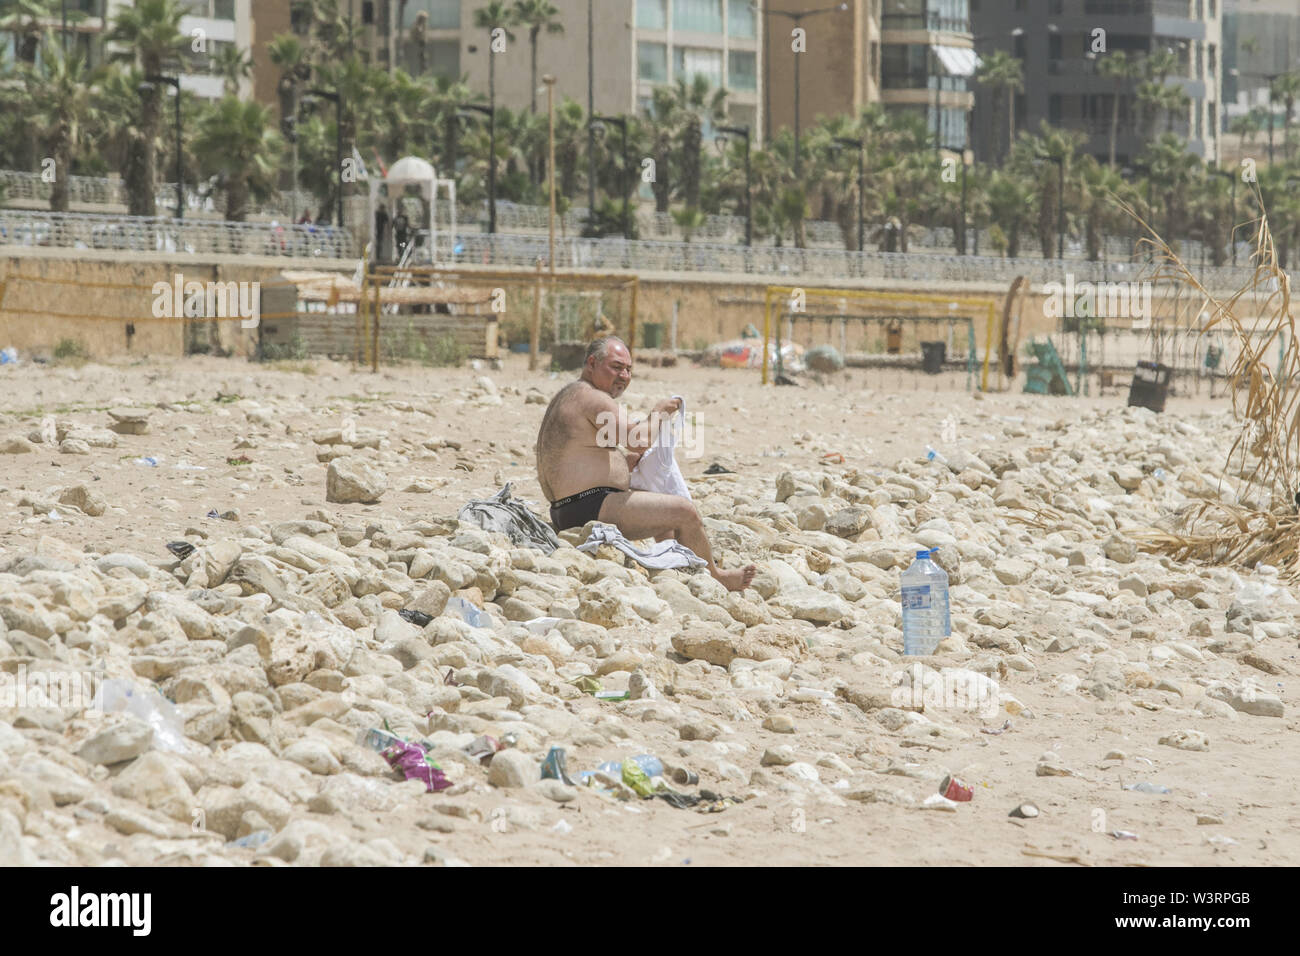 Beirut, Lebanon. 17th July, 2019. A man cools off at the beach in Beirut during a sweltering day as temperatures exceed 40 degrees Celsius. Credit: Amer Ghazzal/SOPA Images/ZUMA Wire/Alamy Live News - Stock Image